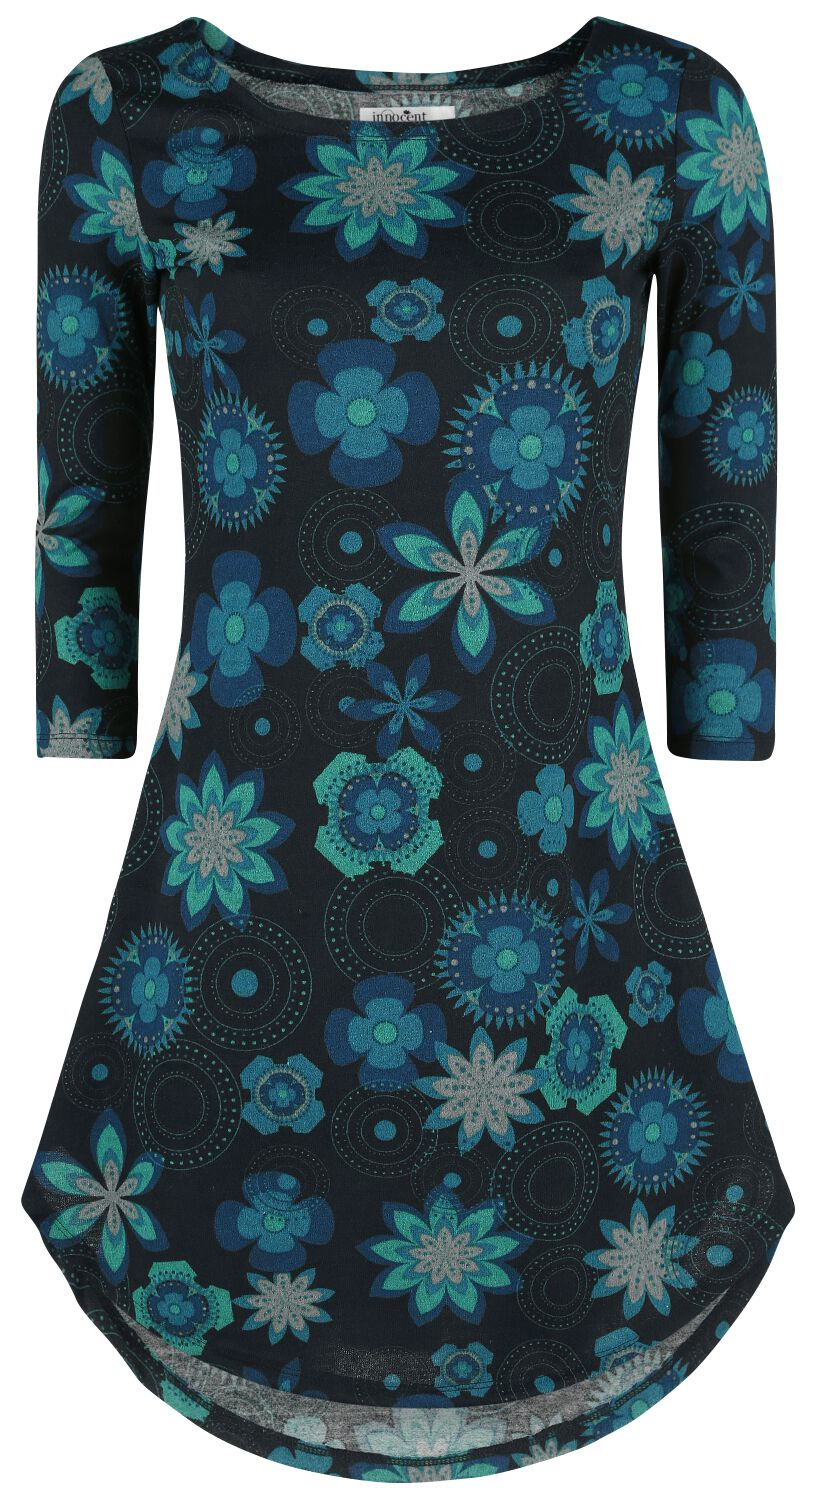 Image of   Innocent Flower Rounds Winter Dress Kjole sort